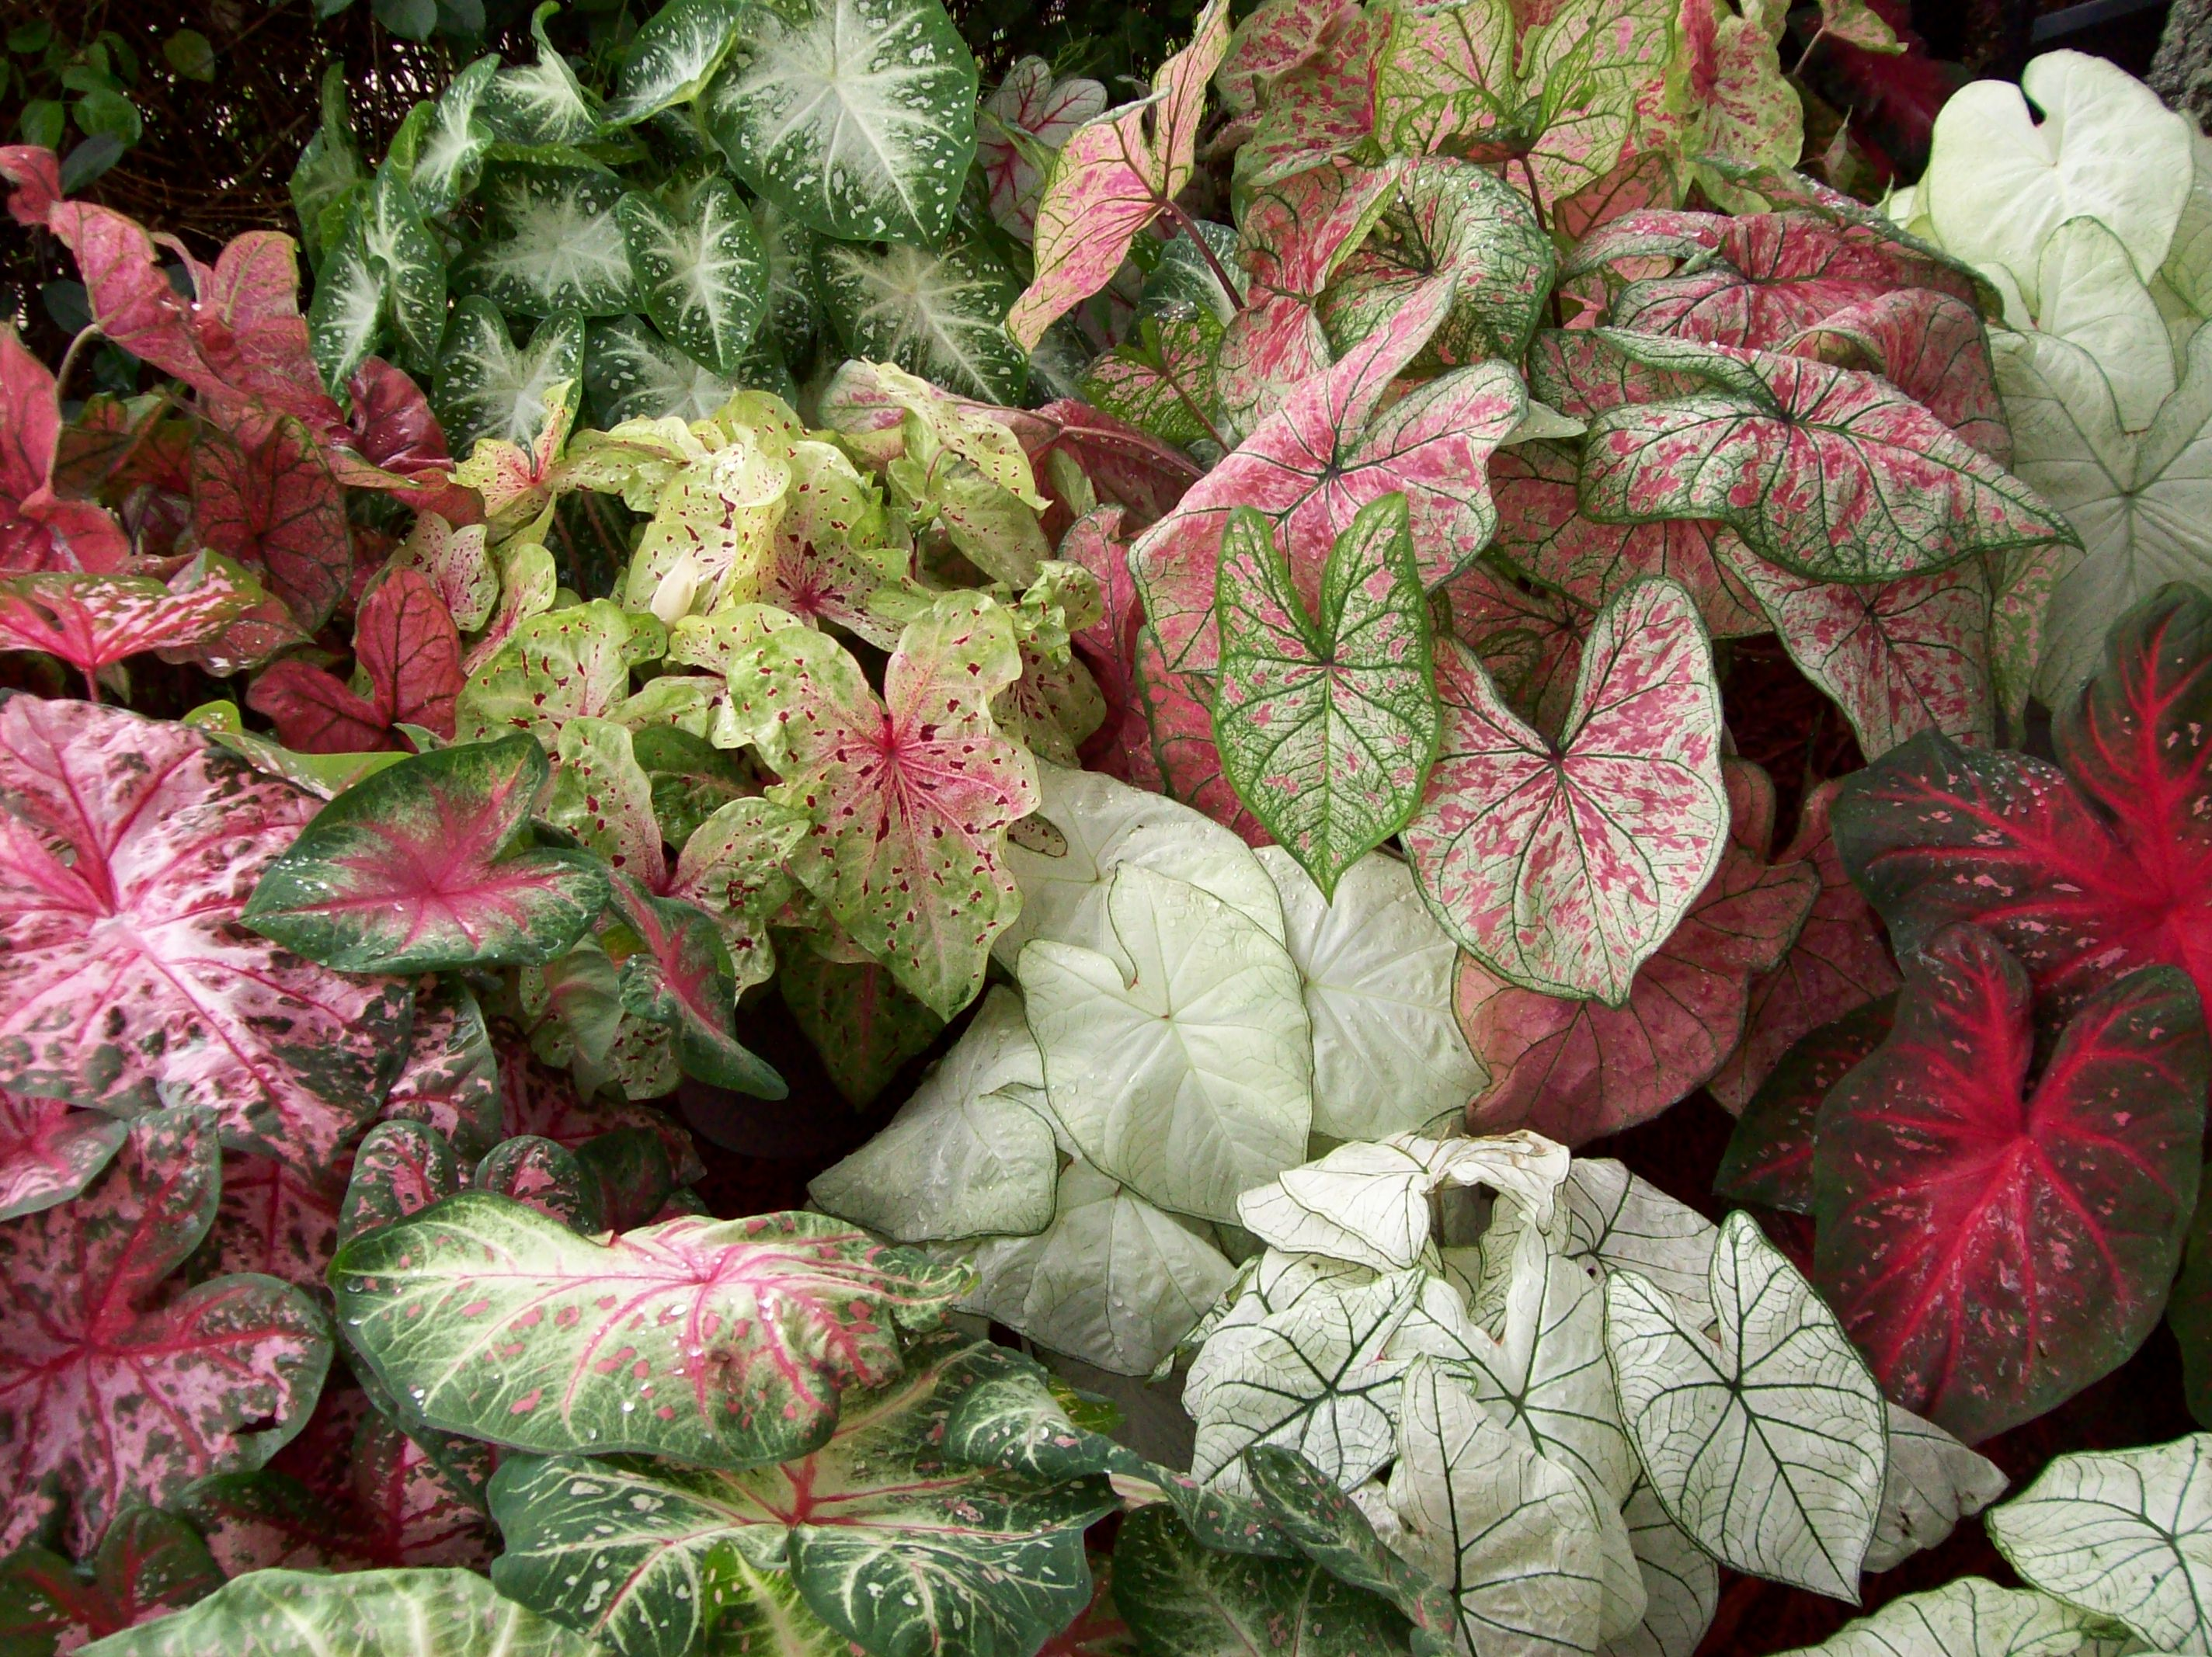 Caladium Bulbs by the Pound - Rainbow Mix Assortments Start at $12.95